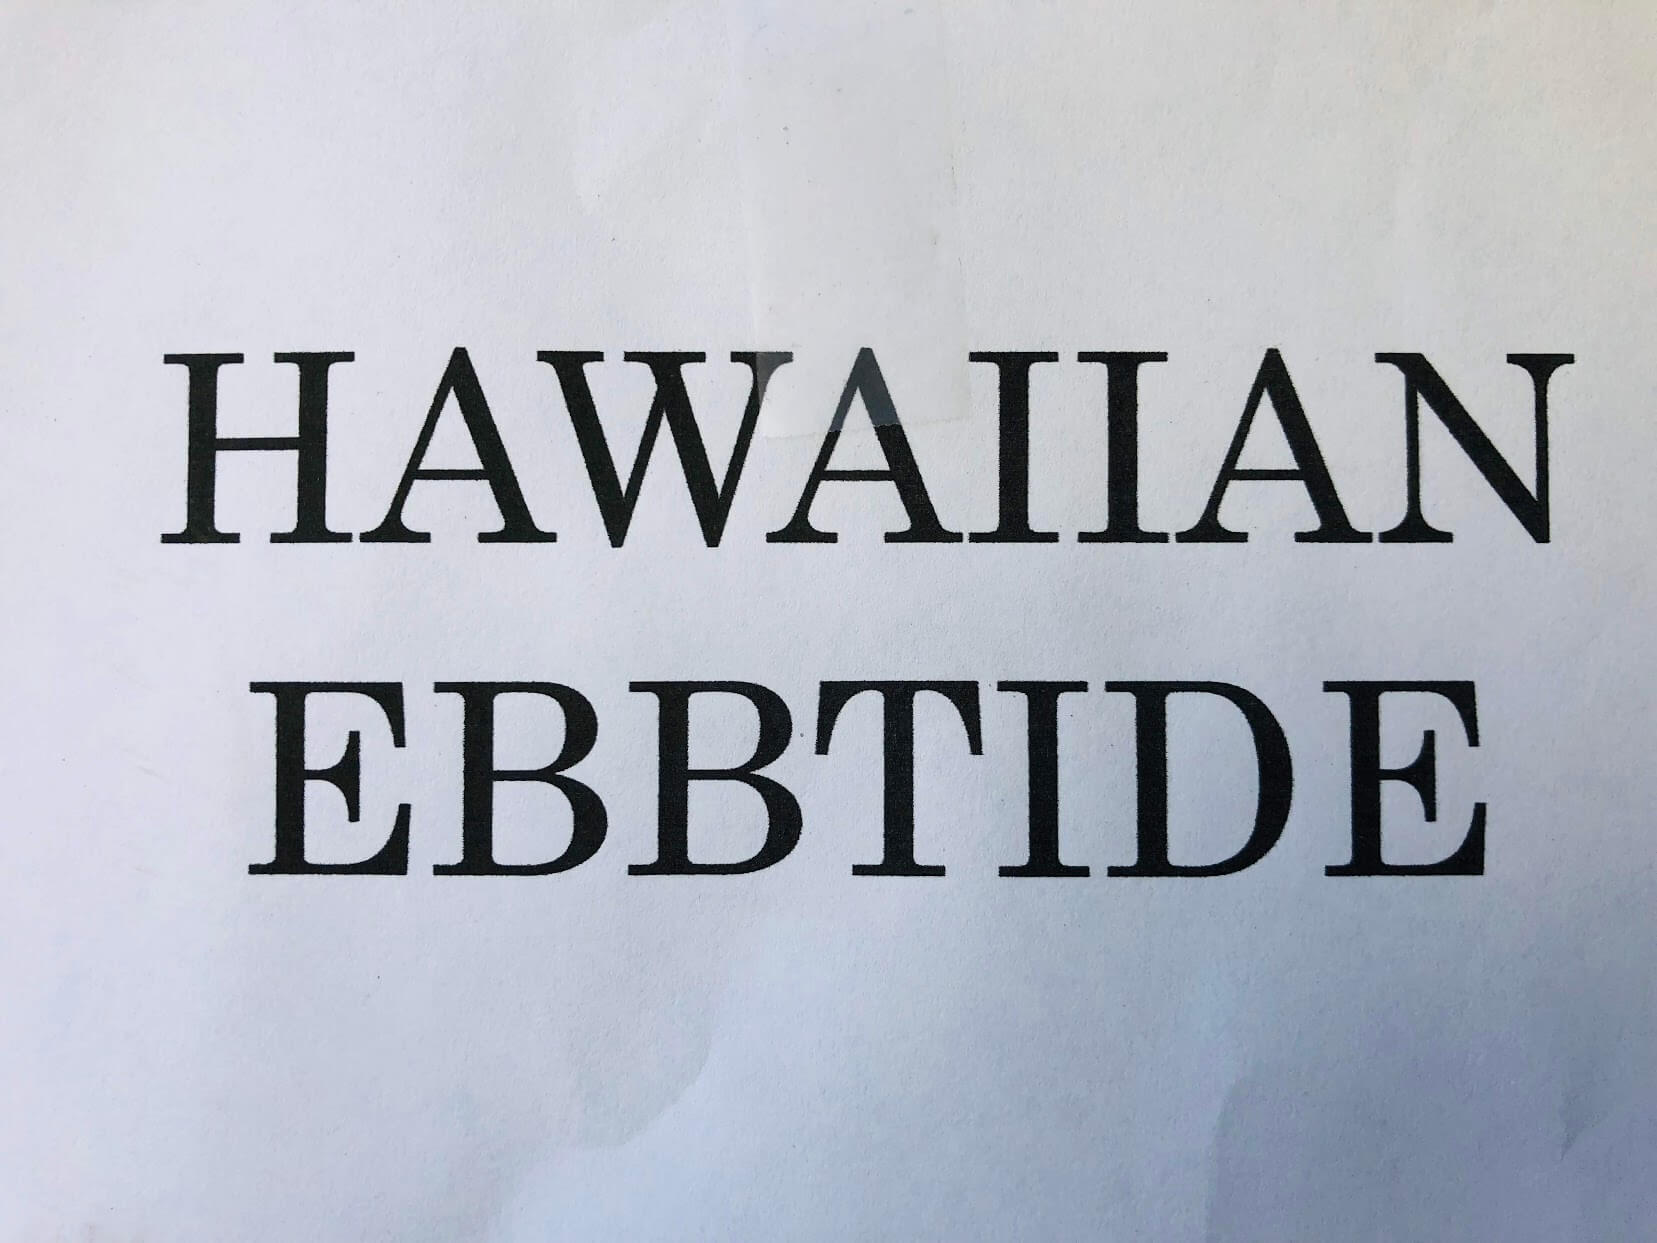 Hawaiian Ebbtideの看板